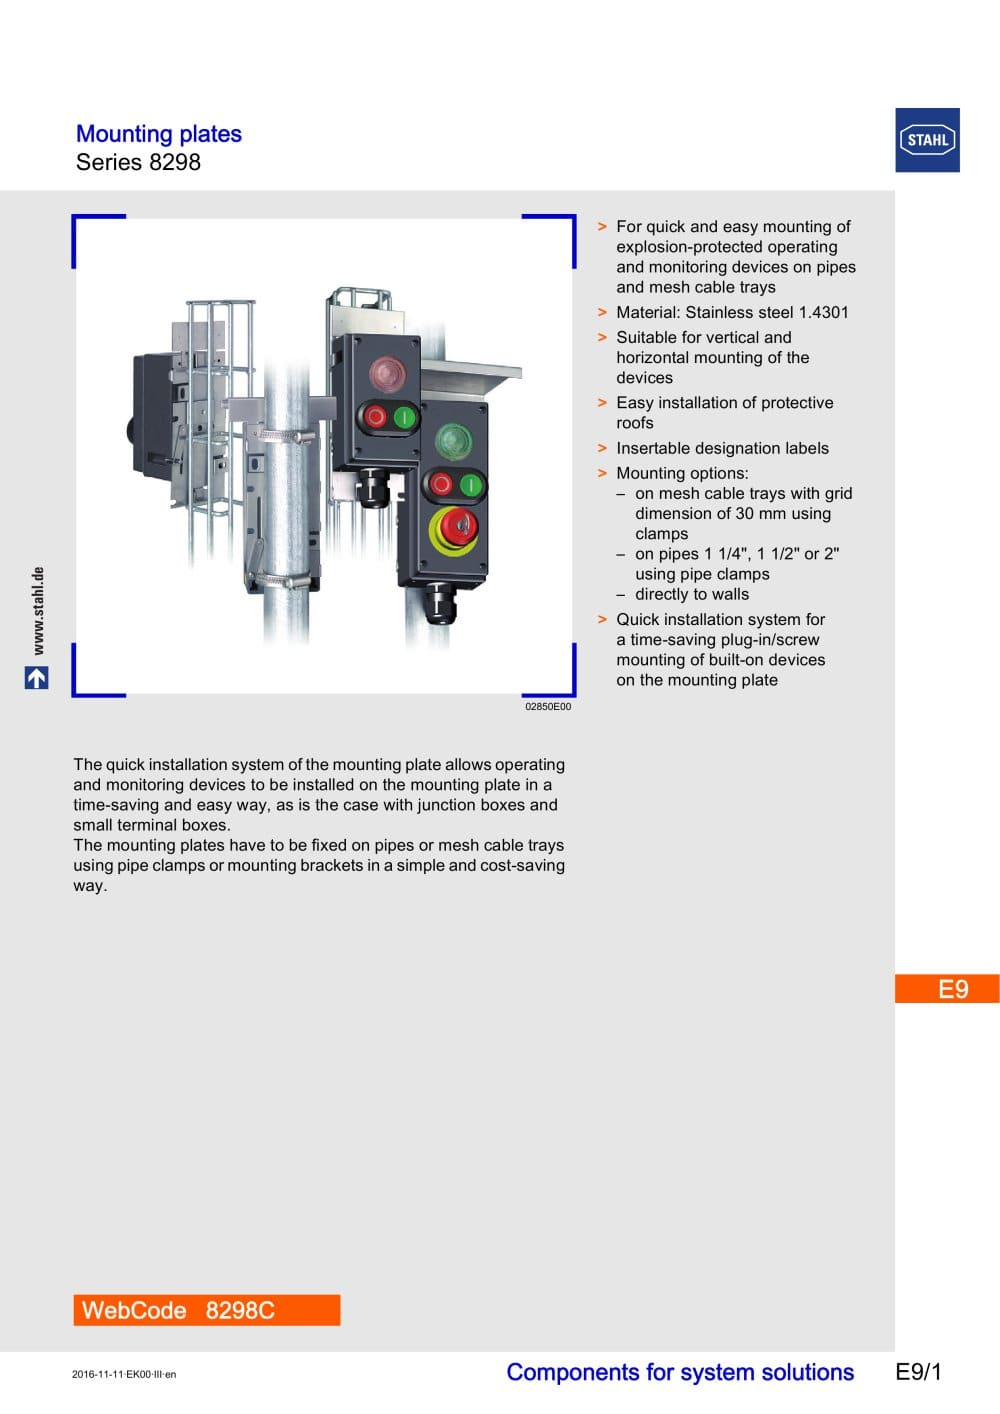 Pulley Fuse Machine For Pipe - Wiring Diagram